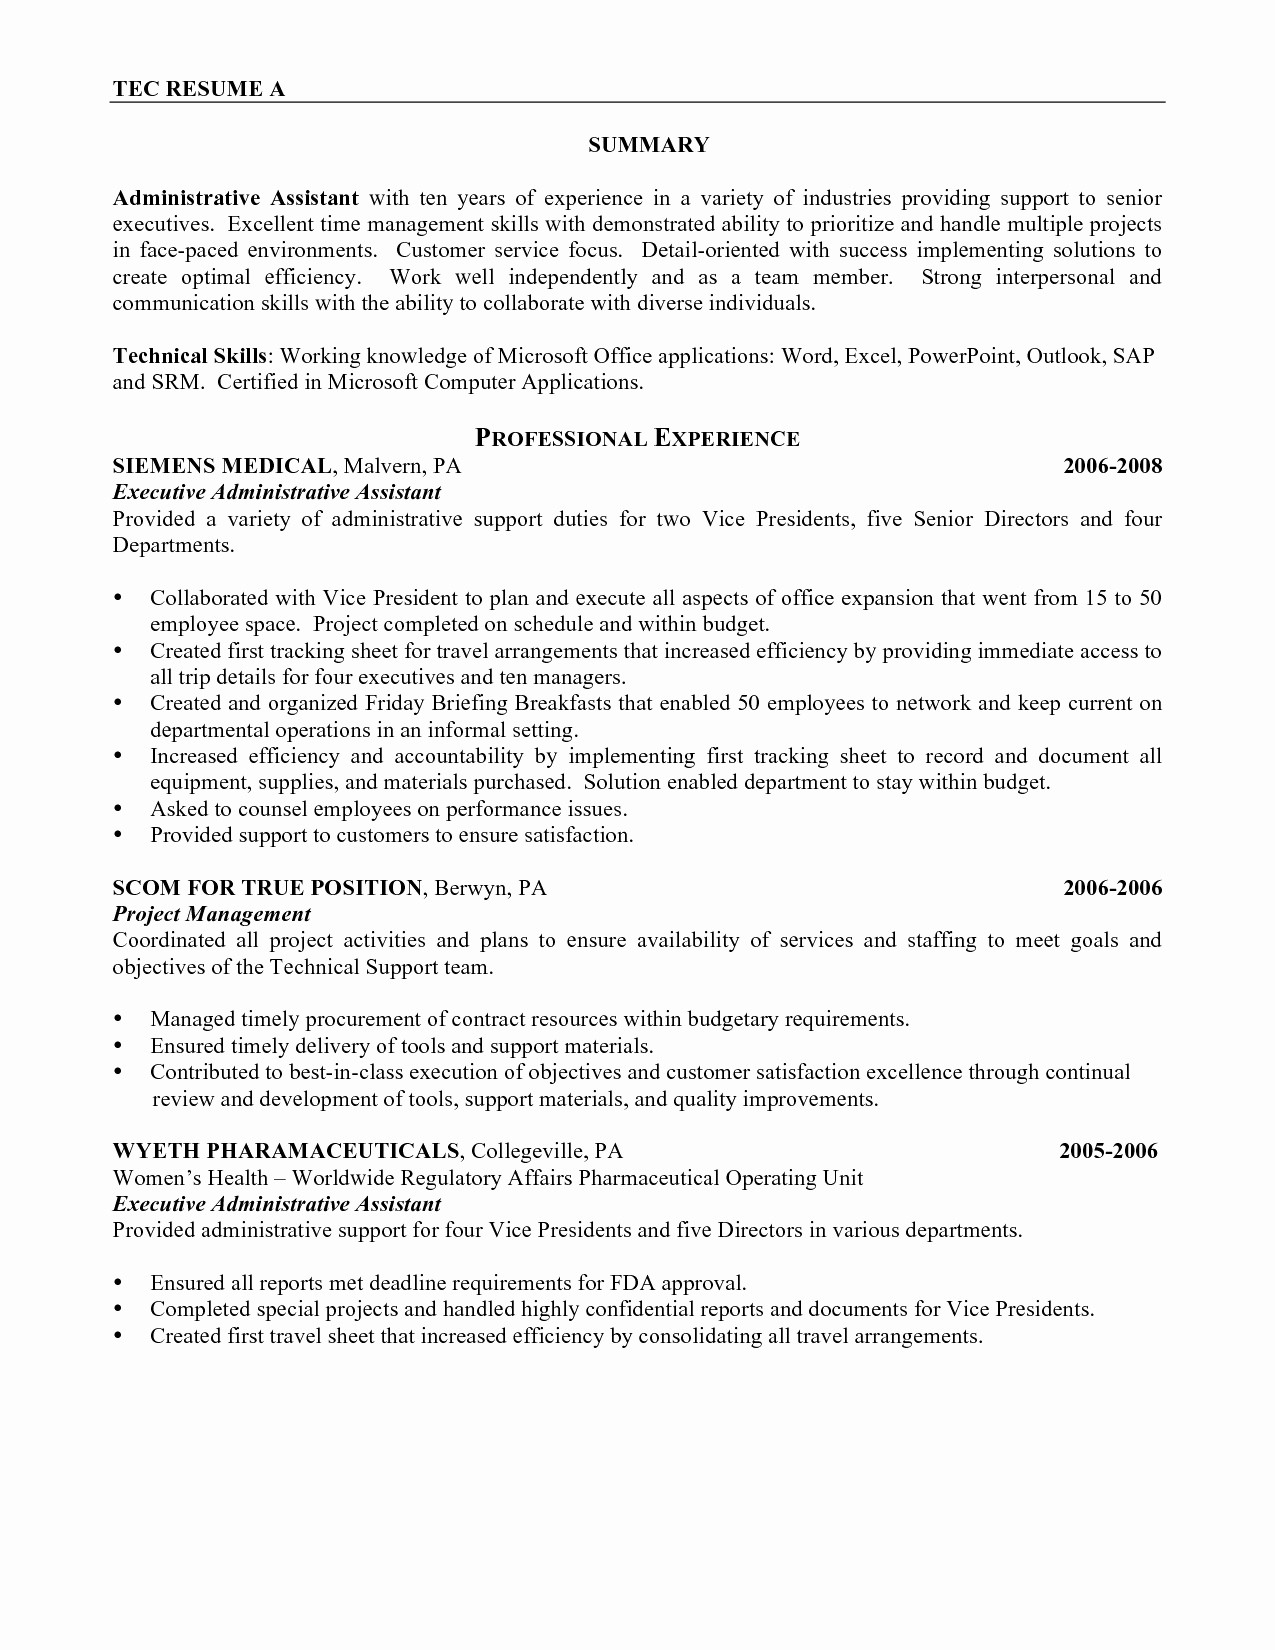 Maintenance Resume Skills - Customer Service Skills Resume New Customer Service Skills for